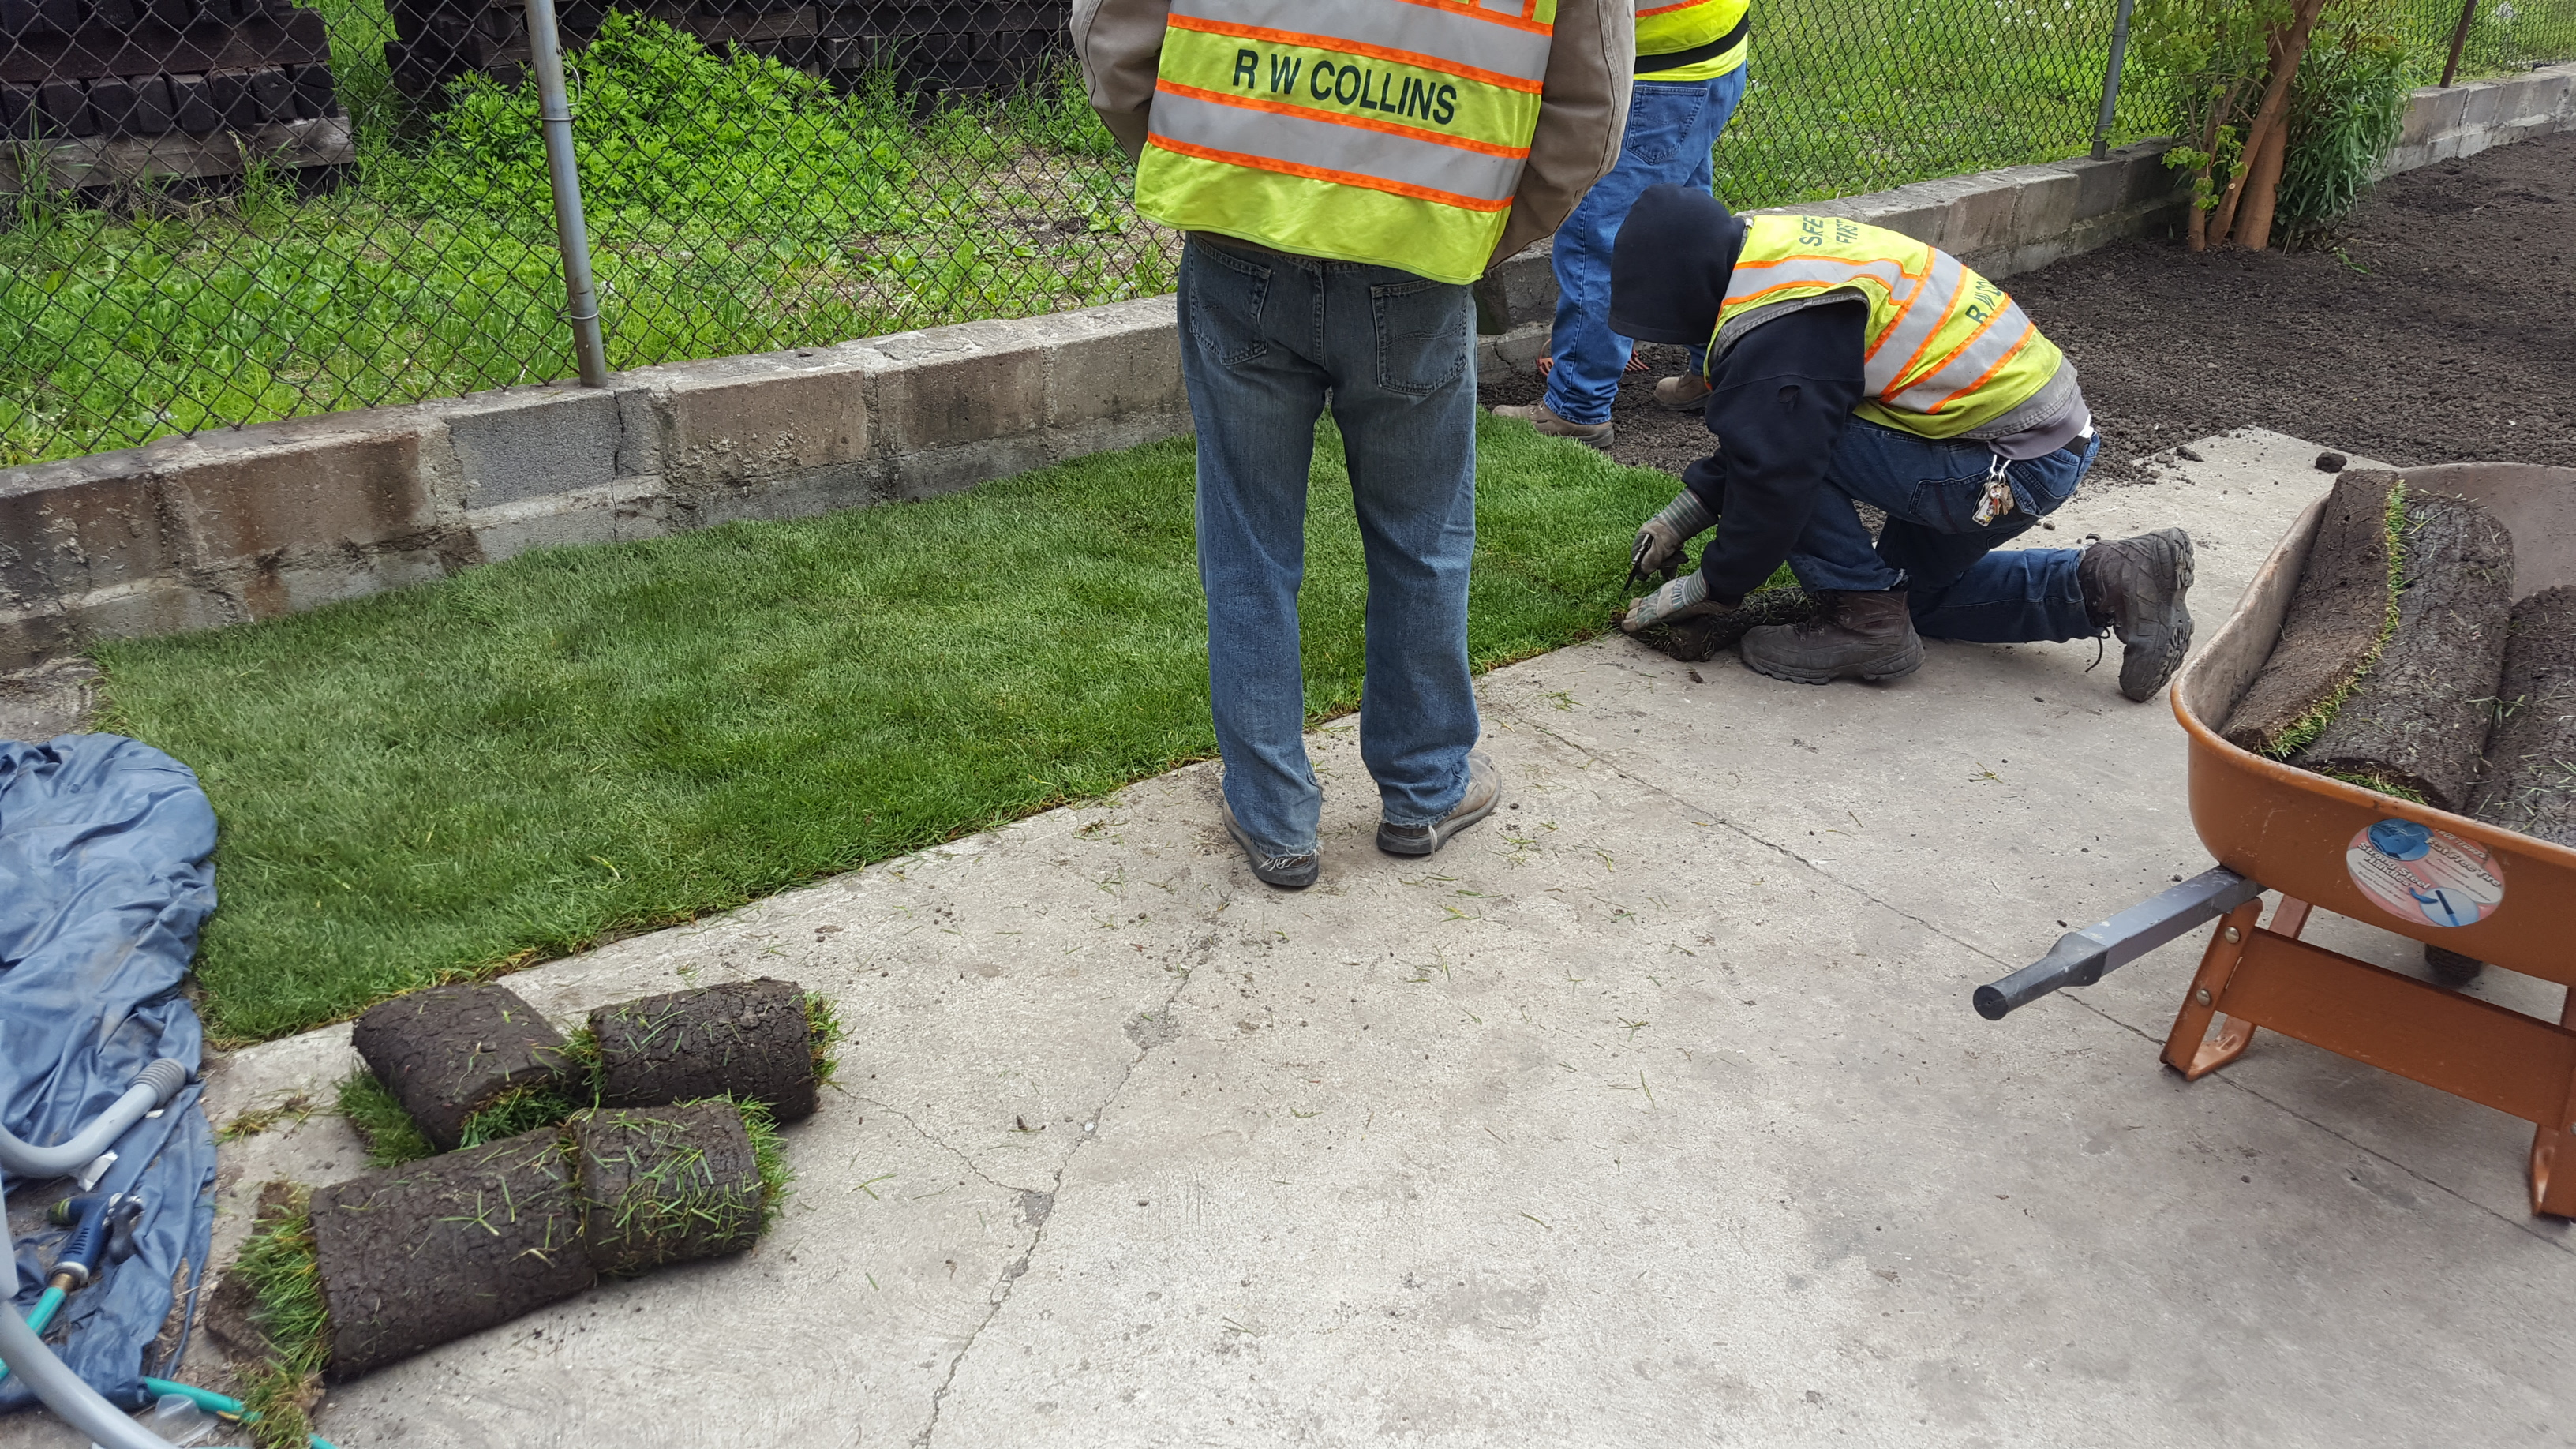 Sod Laid Down On Lawn After Removal And Replacement Of Lead Contaminated Soil